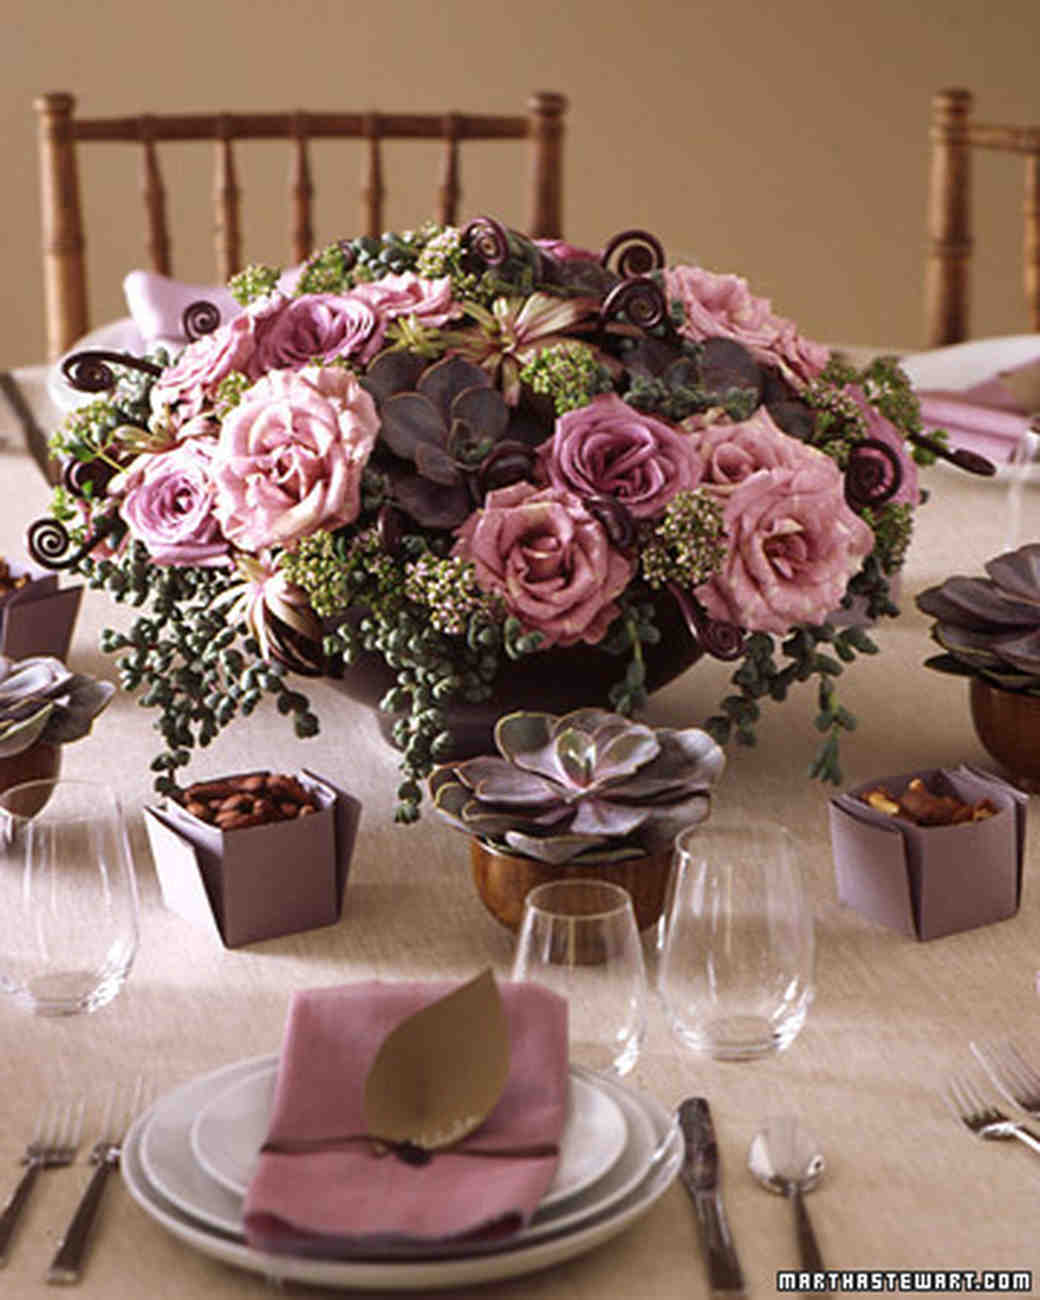 Purple and blue wedding centerpieces martha stewart weddings rose centerpiece table arrangements for your wedding in romantic purple dhlflorist Image collections